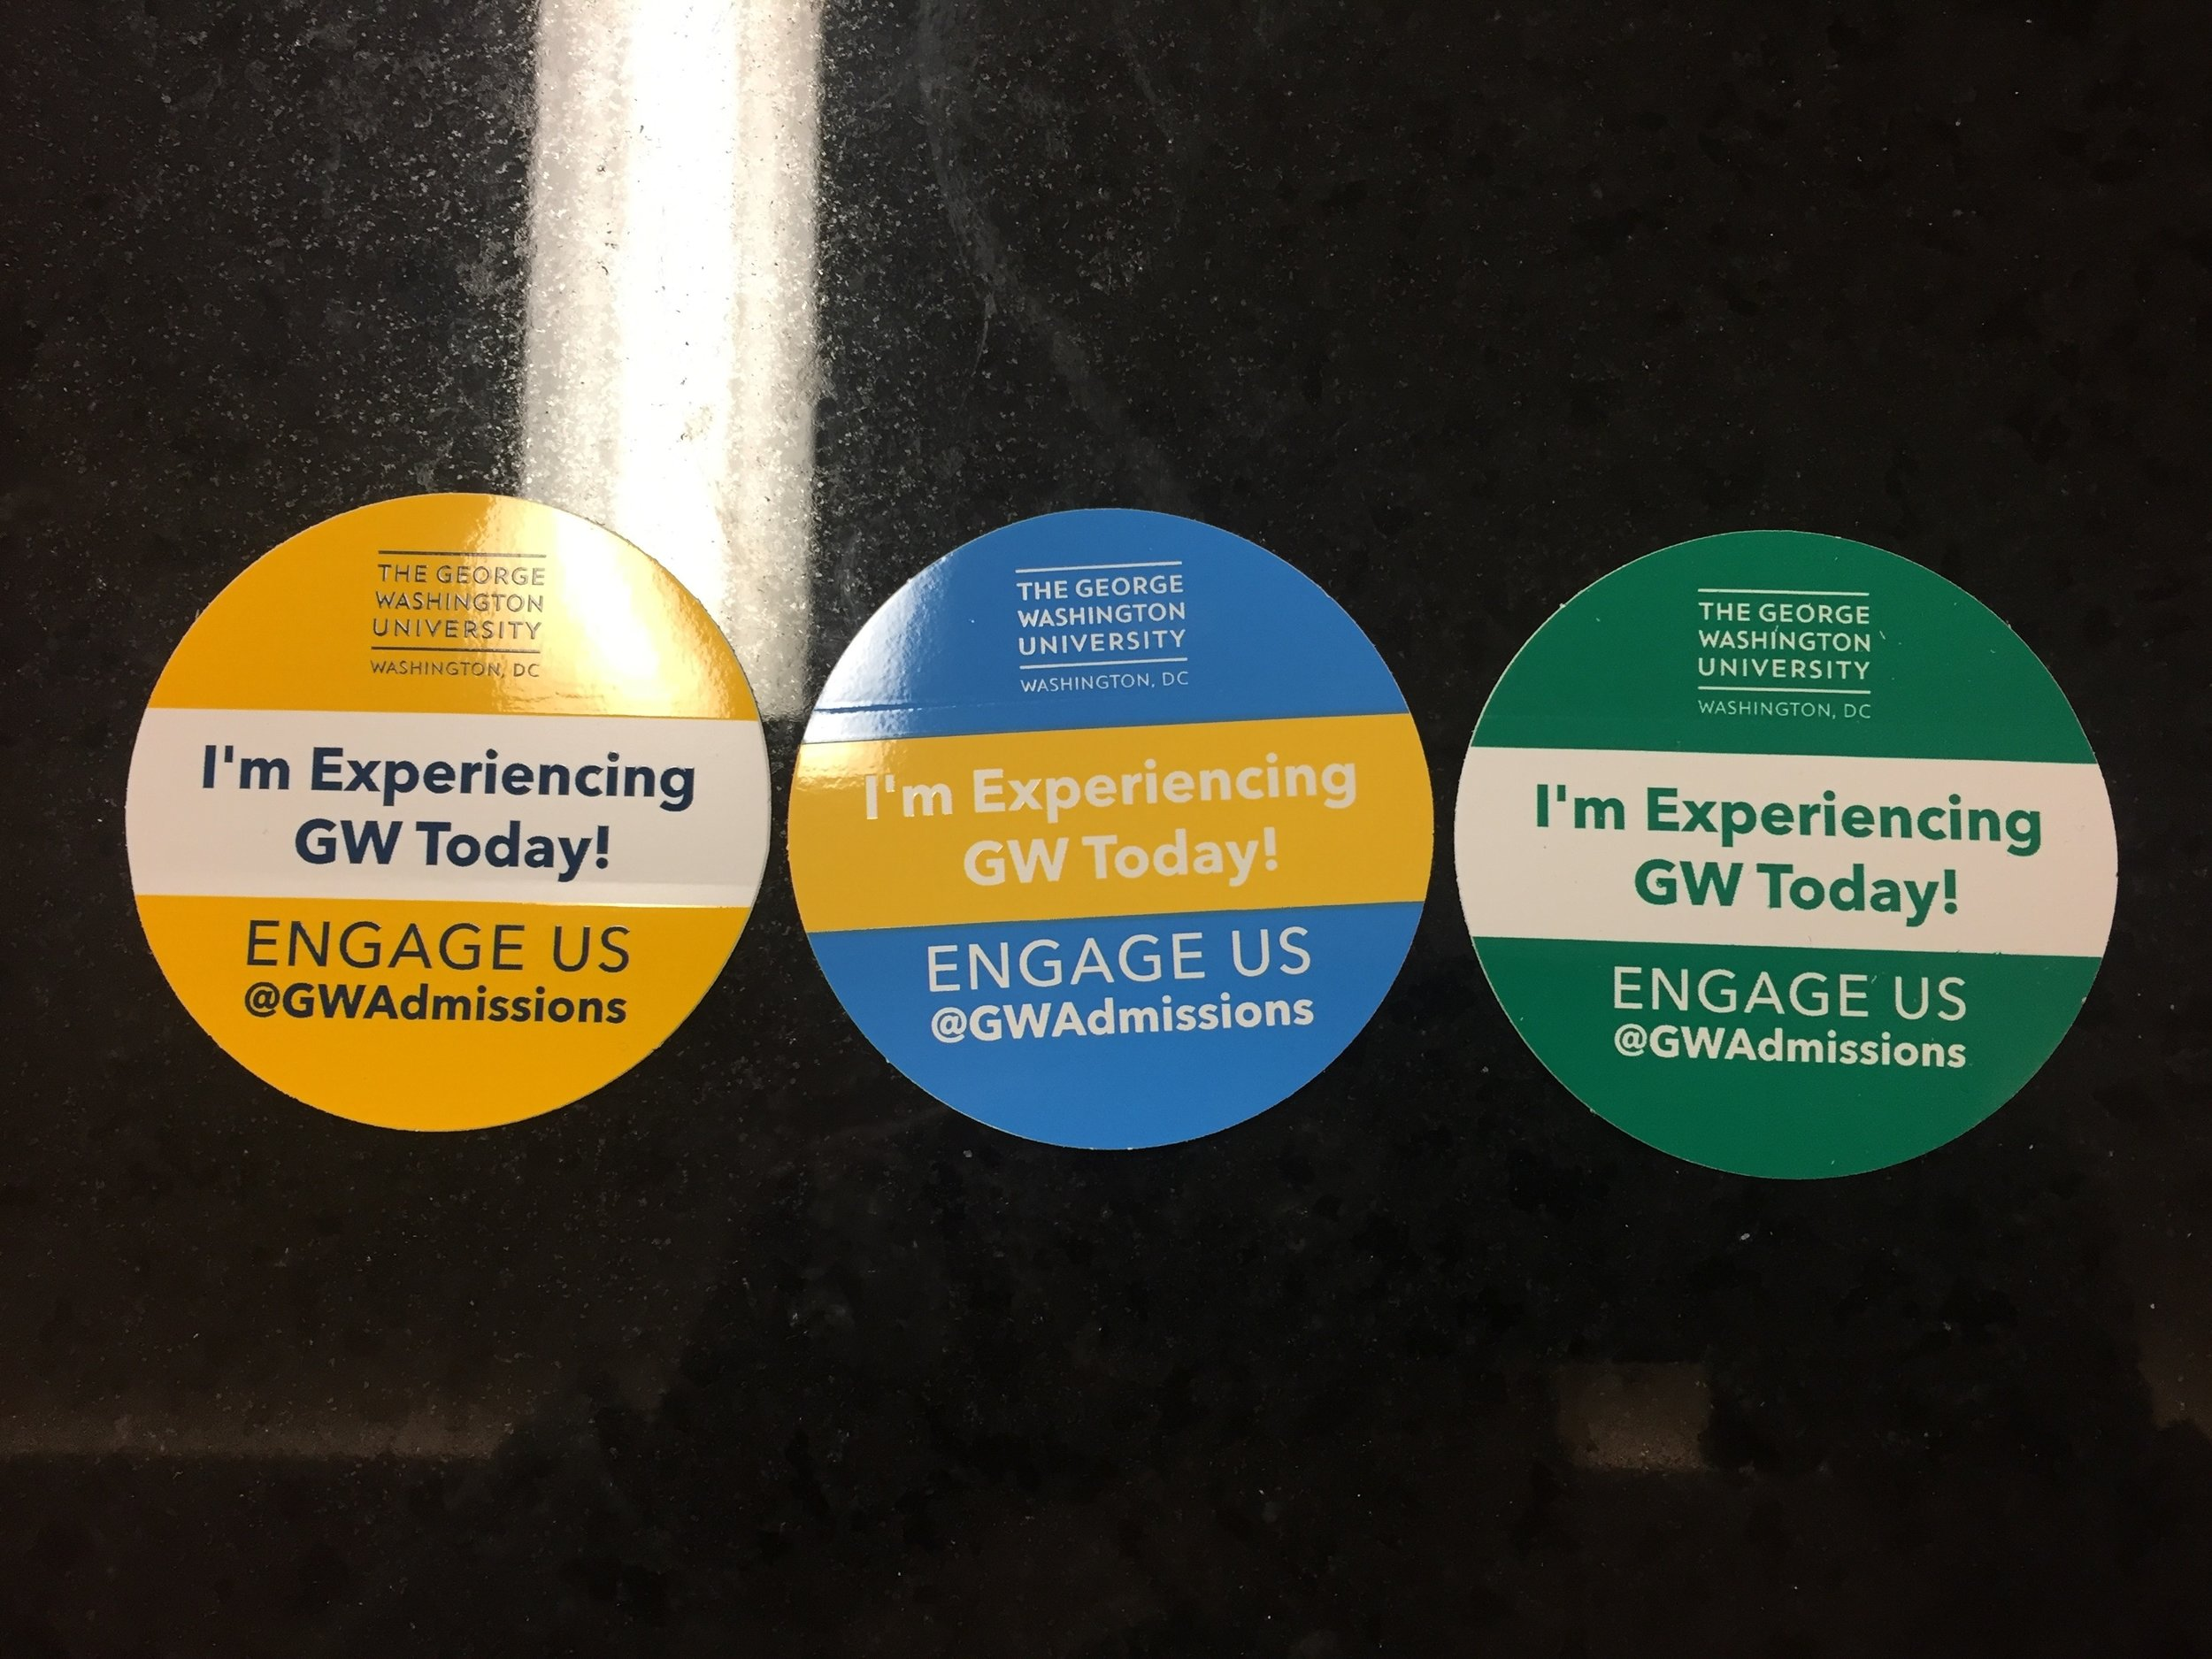 George Washington University uses different colored stickers (dependent on where they are at in the admission process)to identify visitors while on tour.